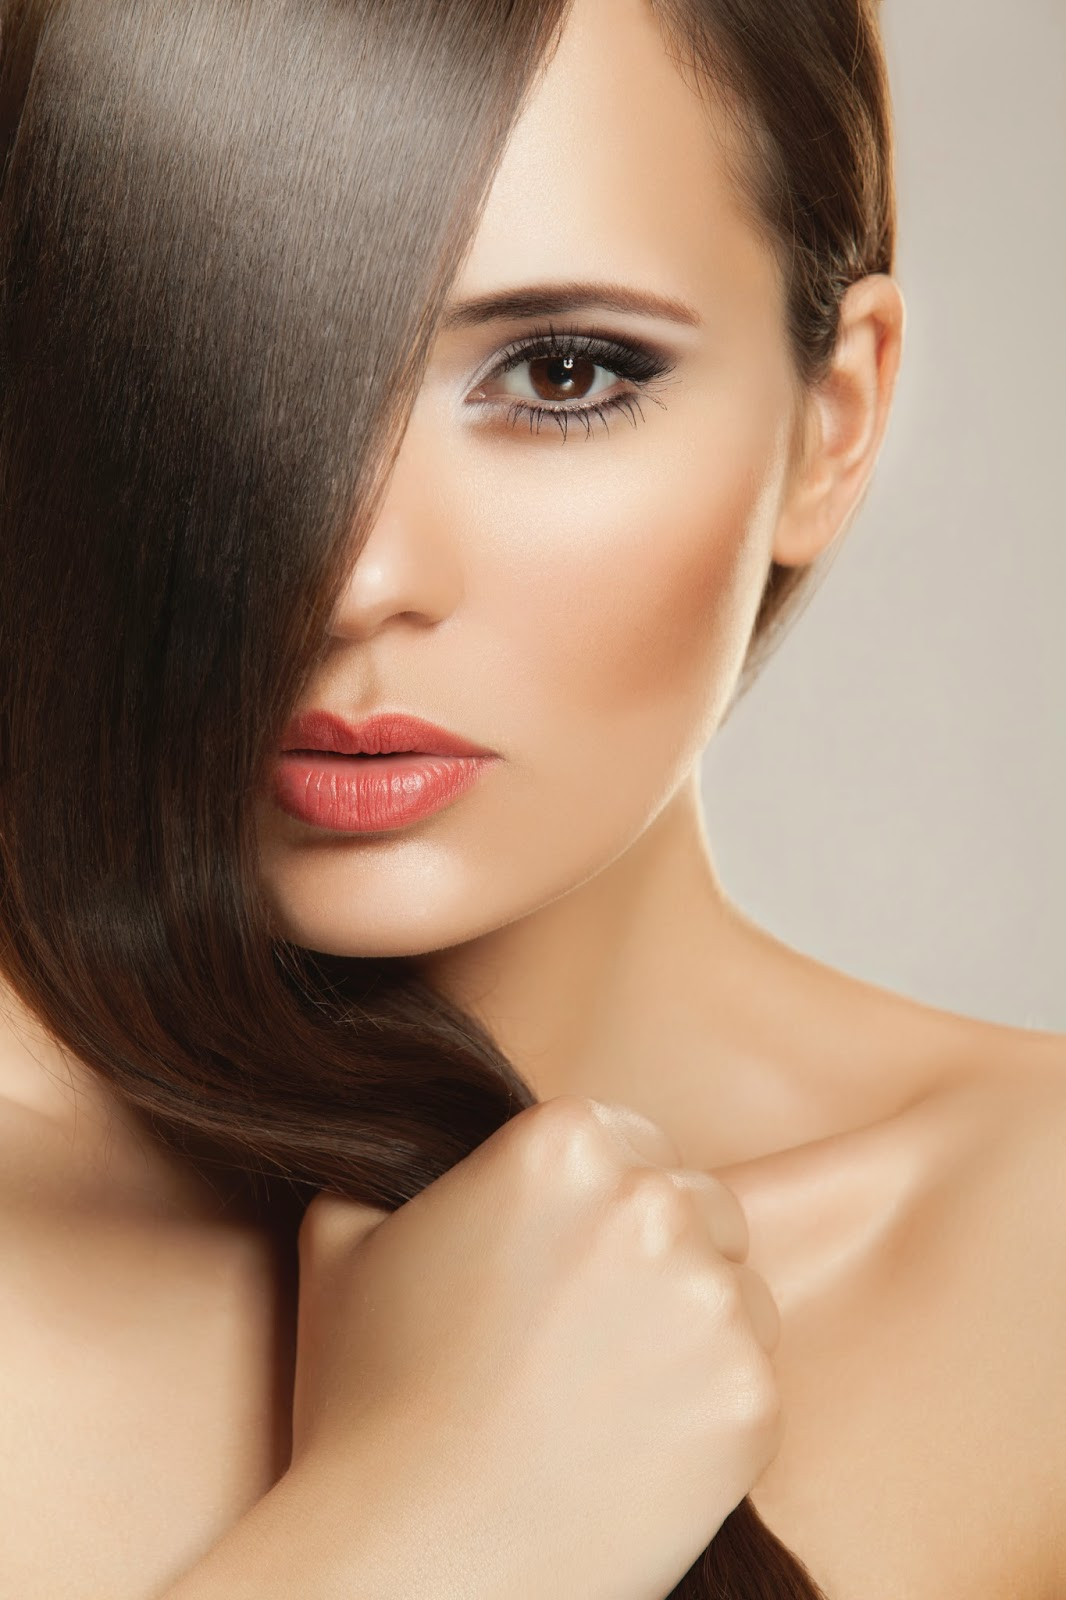 Sheer Beauty: GUEST POST: THE SECRETS TO SHINY HAIR - BY ABBY